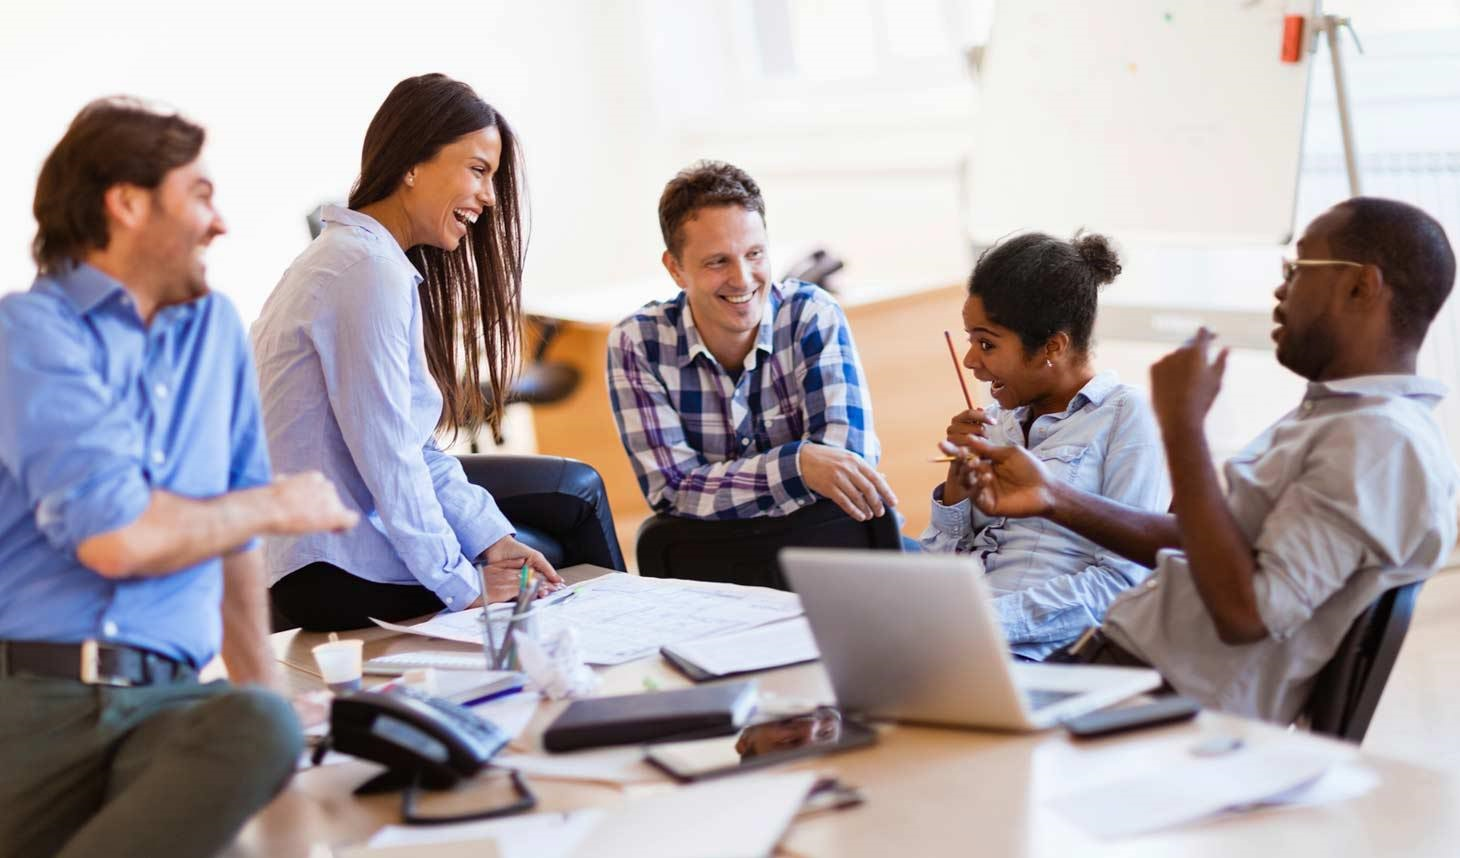 How to manage generational differences in the workplace